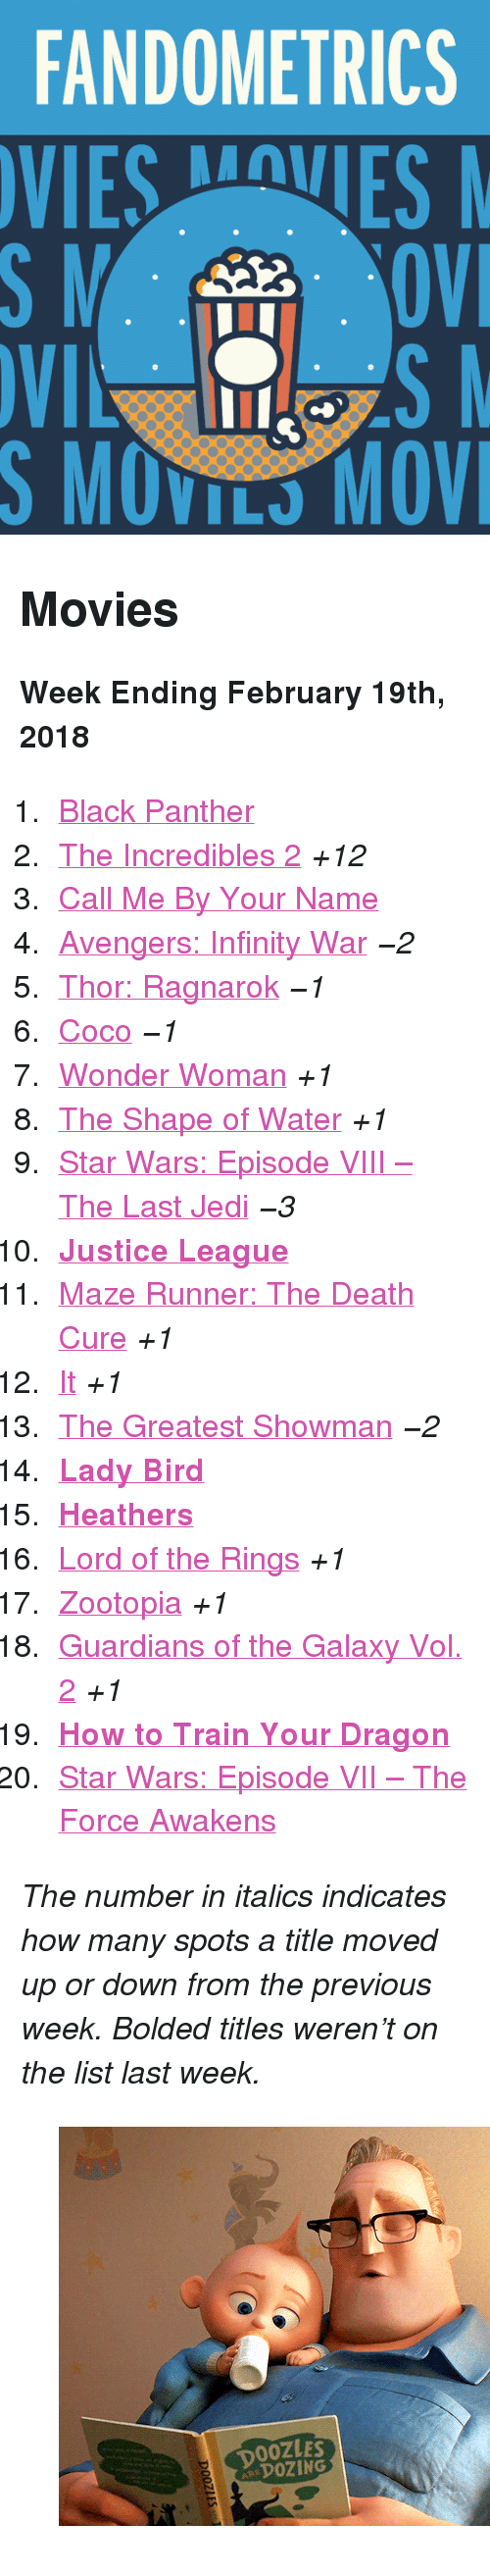 """the force awakens: FANDOMETRICS  SMOVILS MOV <h2>Movies</h2><p><b>Week Ending February 19th, 2018</b></p><ol><li><a href=""""http://www.tumblr.com/search/black%20panther"""">Black Panther</a></li>  <li><a href=""""http://www.tumblr.com/search/the%20incredibles"""">The Incredibles 2</a><i>+12</i></li>  <li><a href=""""http://www.tumblr.com/search/call%20me%20by%20your%20name"""">Call Me By Your Name</a></li>  <li><a href=""""http://www.tumblr.com/search/infinity%20war"""">Avengers: Infinity War</a><i><i>−2</i></i></li>  <li><a href=""""http://www.tumblr.com/search/thor%20ragnarok"""">Thor: Ragnarok</a><i><i>−1</i></i></li>  <li><a href=""""http://www.tumblr.com/search/coco"""">Coco</a><i><i>−1</i></i></li>  <li><a href=""""http://www.tumblr.com/search/wonder%20woman"""">Wonder Woman</a><i>+1</i></li>  <li><a href=""""http://www.tumblr.com/search/the%20shape%20of%20water"""">The Shape of Water</a><i>+1</i></li>  <li><a href=""""http://www.tumblr.com/search/the%20last%20jedi"""">Star Wars: Episode VIII – The Last Jedi</a><i><i>−3</i></i></li>  <li><a href=""""http://www.tumblr.com/search/justice%20league""""><b>Justice League</b></a></li>  <li><a href=""""http://www.tumblr.com/search/the%20maze%20runner"""">Maze Runner: The Death Cure</a><i>+1</i></li>  <li><a href=""""http://www.tumblr.com/search/it%202017"""">It</a><i>+1</i></li>  <li><a href=""""http://www.tumblr.com/search/the%20greatest%20showman"""">The Greatest Showman</a><i><i>−2</i></i></li>  <li><a href=""""http://www.tumblr.com/search/lady%20bird""""><b>Lady Bird</b></a></li>  <li><a href=""""http://www.tumblr.com/search/heathers""""><b>Heathers</b></a></li>  <li><a href=""""http://www.tumblr.com/search/lotr"""">Lord of the Rings</a><i>+1</i></li>  <li><a href=""""http://www.tumblr.com/search/zootopia"""">Zootopia</a><i>+1</i></li>  <li><a href=""""http://www.tumblr.com/search/guardians%20of%20the%20galaxy"""">Guardians of the Galaxy Vol. 2</a><i>+1</i></li>  <li><a href=""""http://www.tumblr.com/search/httyd""""><b>How to Train Your Dragon</b></a></li>  <li><a href=""""http://www.tumblr.com/search/the%20force%20awakens"""">S"""